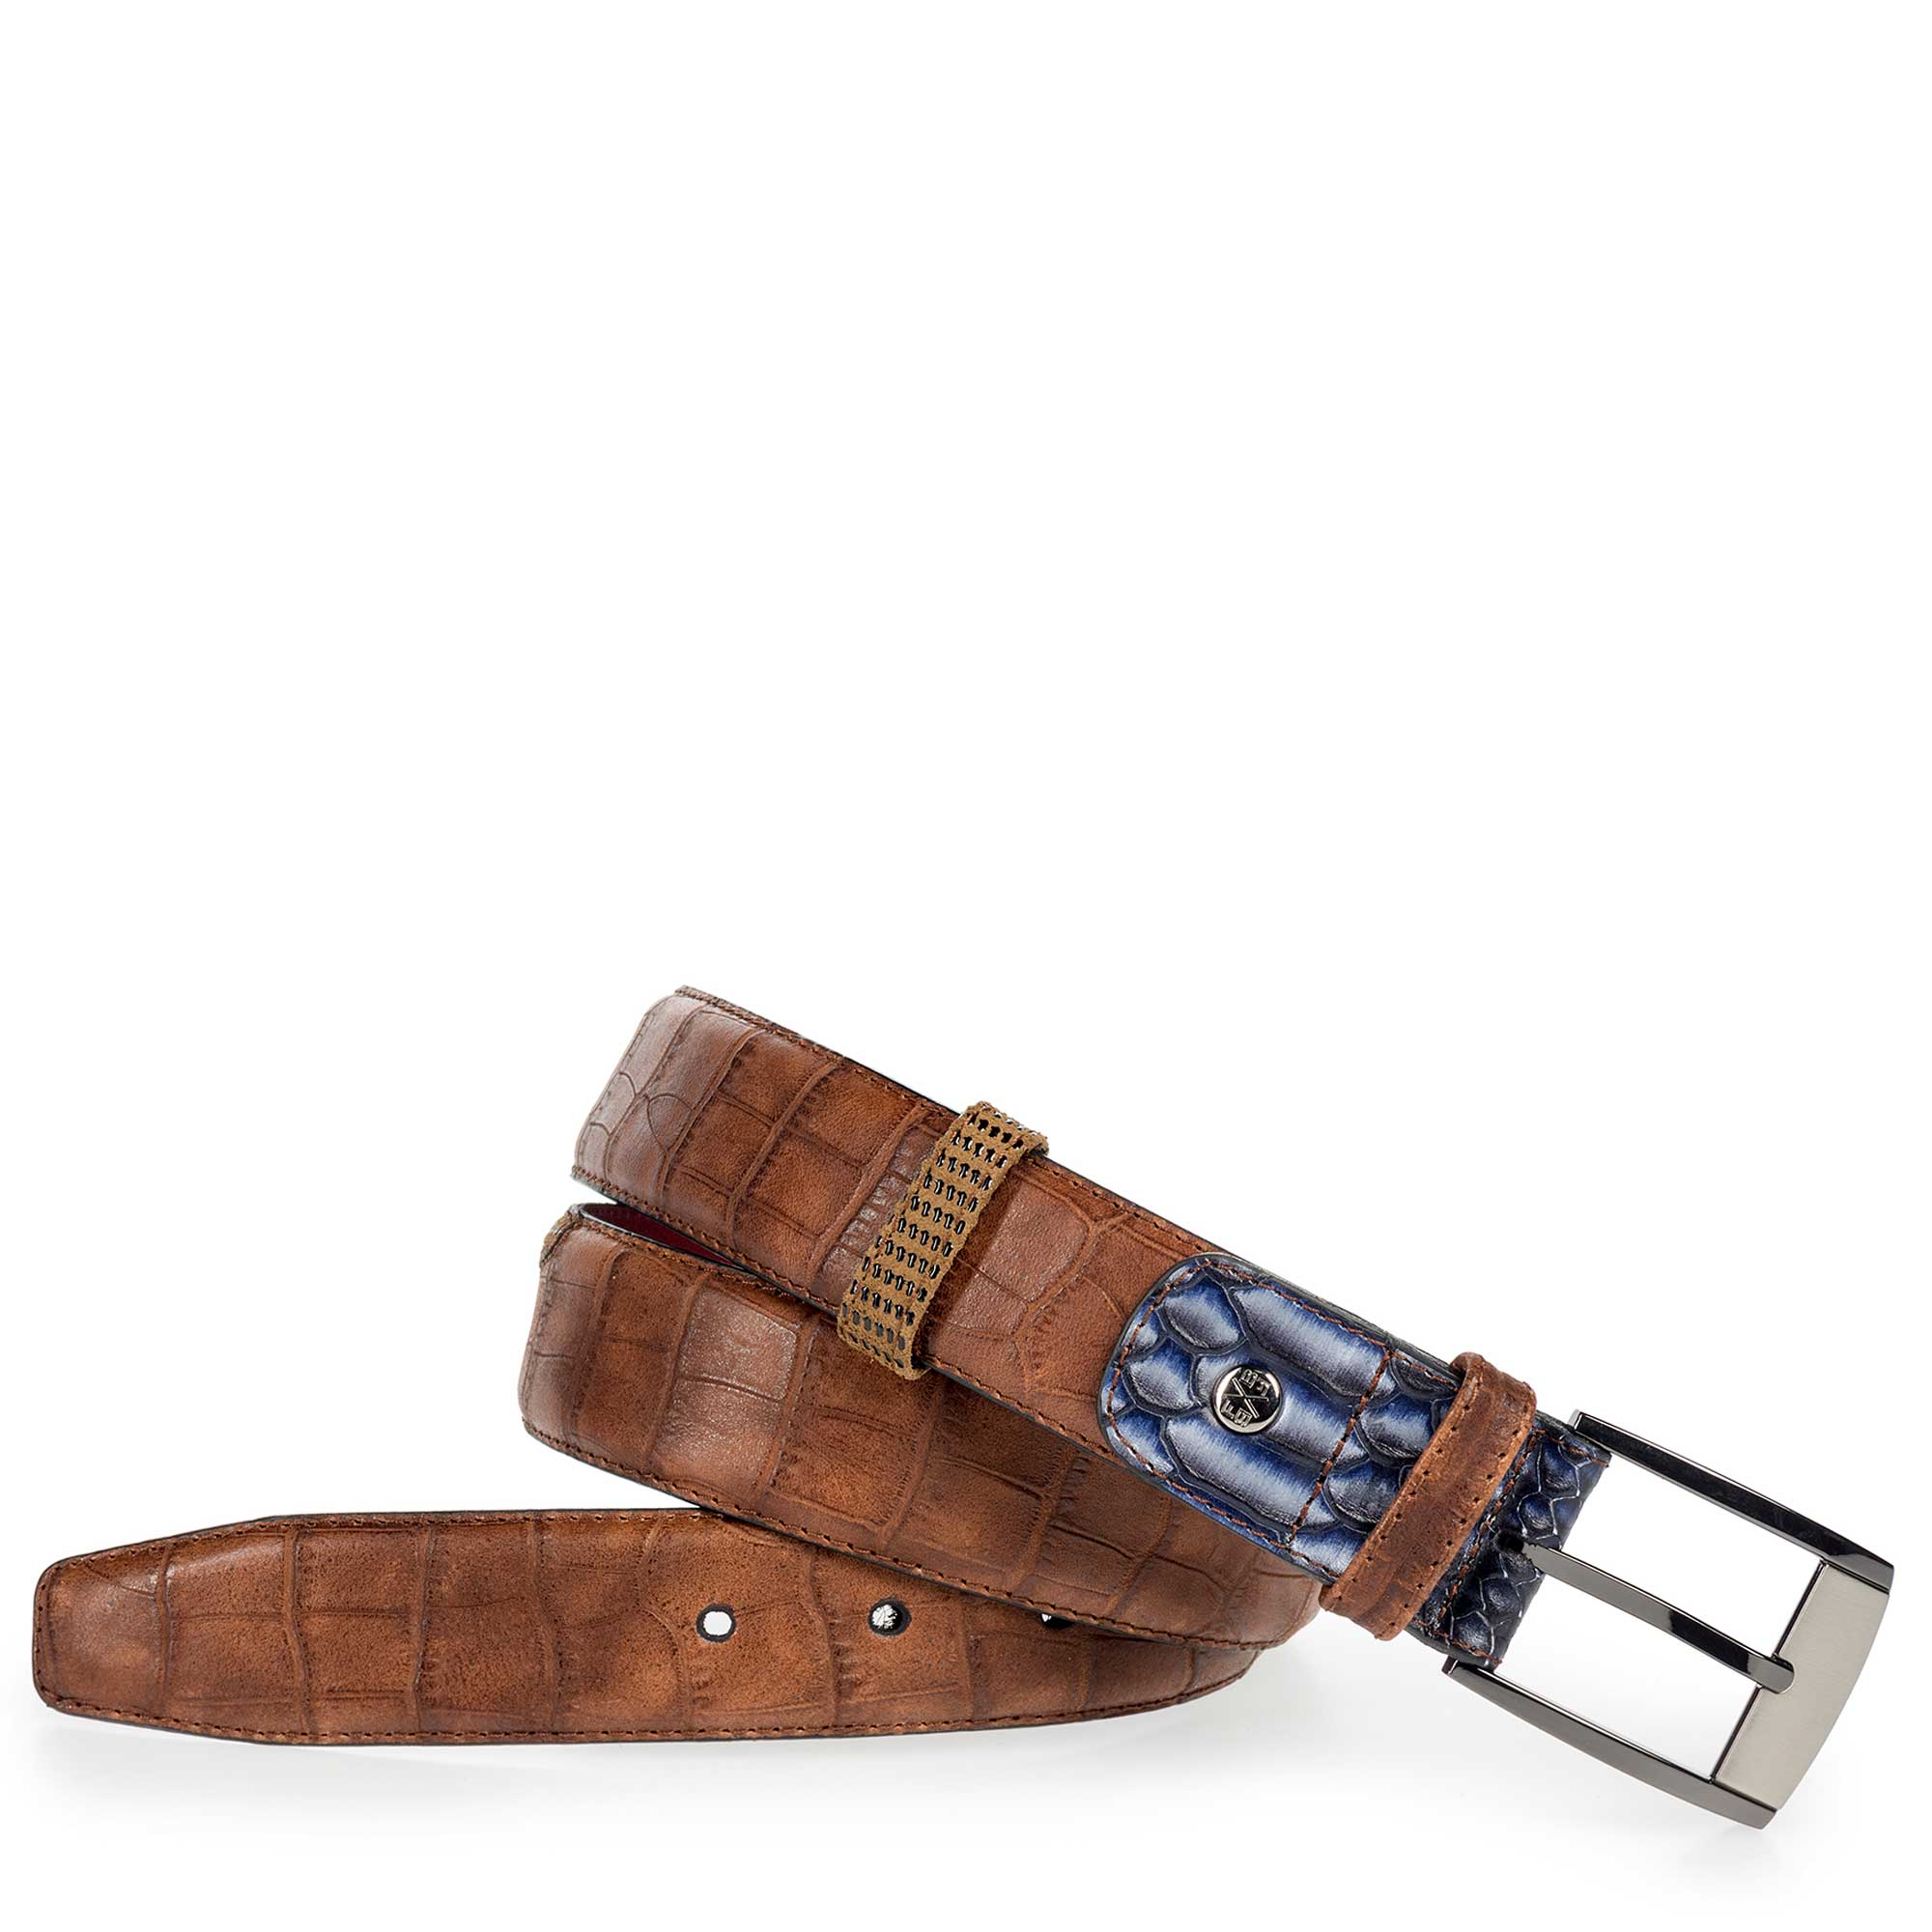 75176/08 - Cognac-coloured leather belt with a croco print